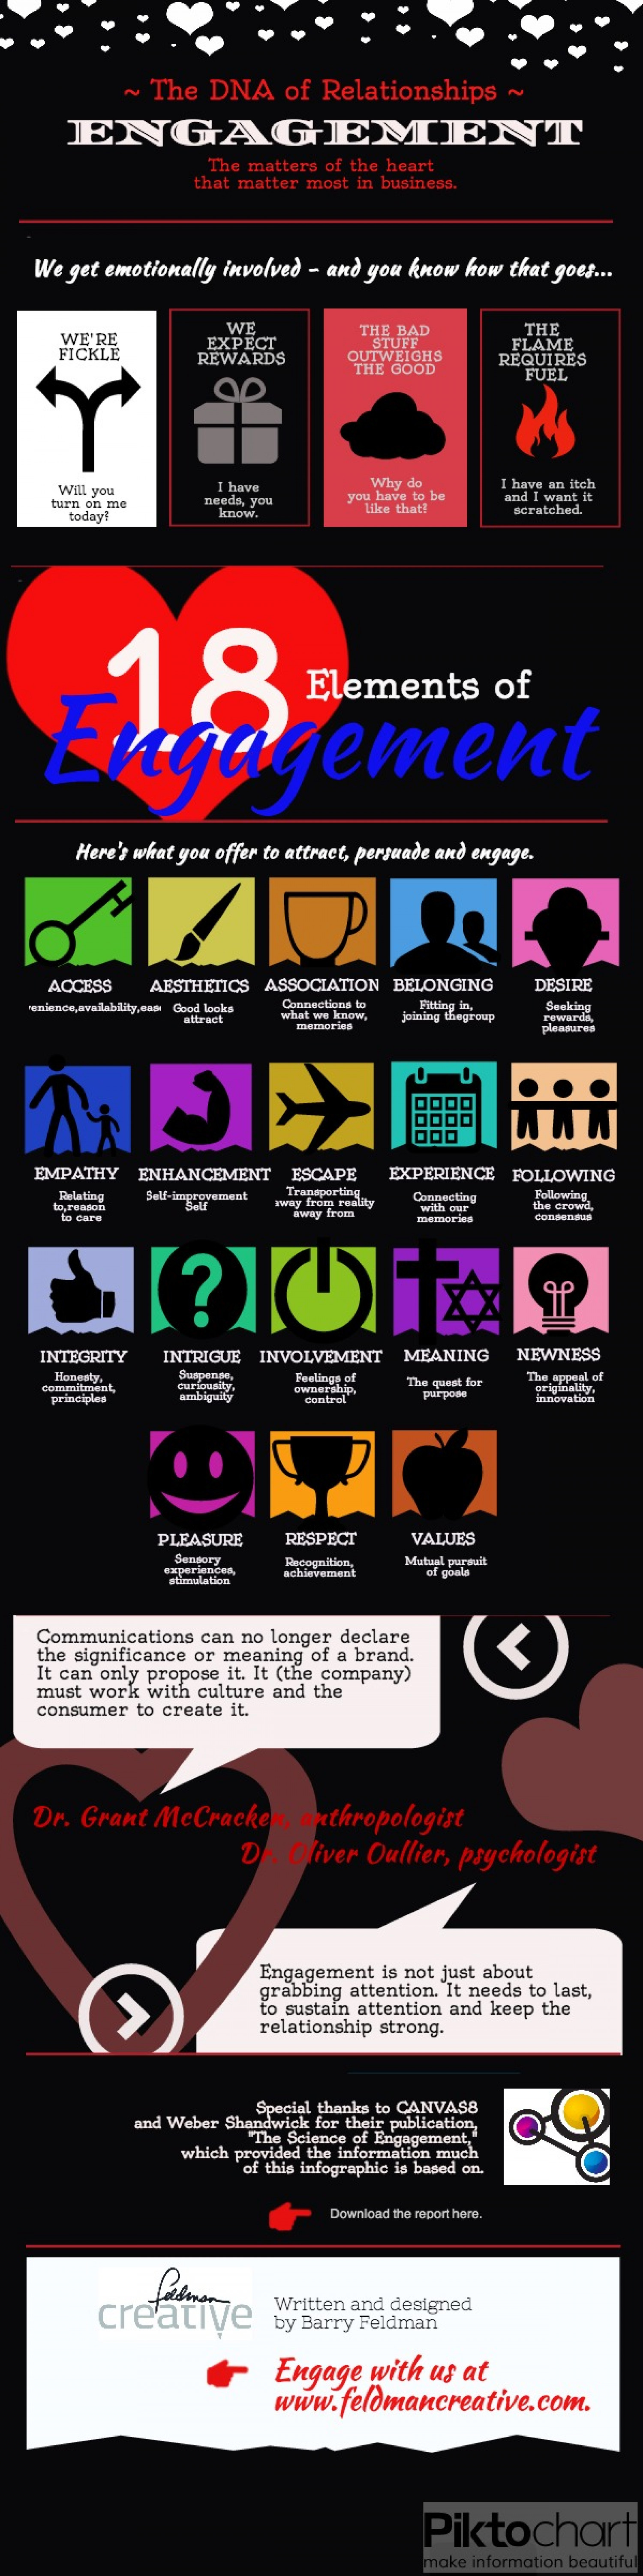 The Elements of Engagement Infographic